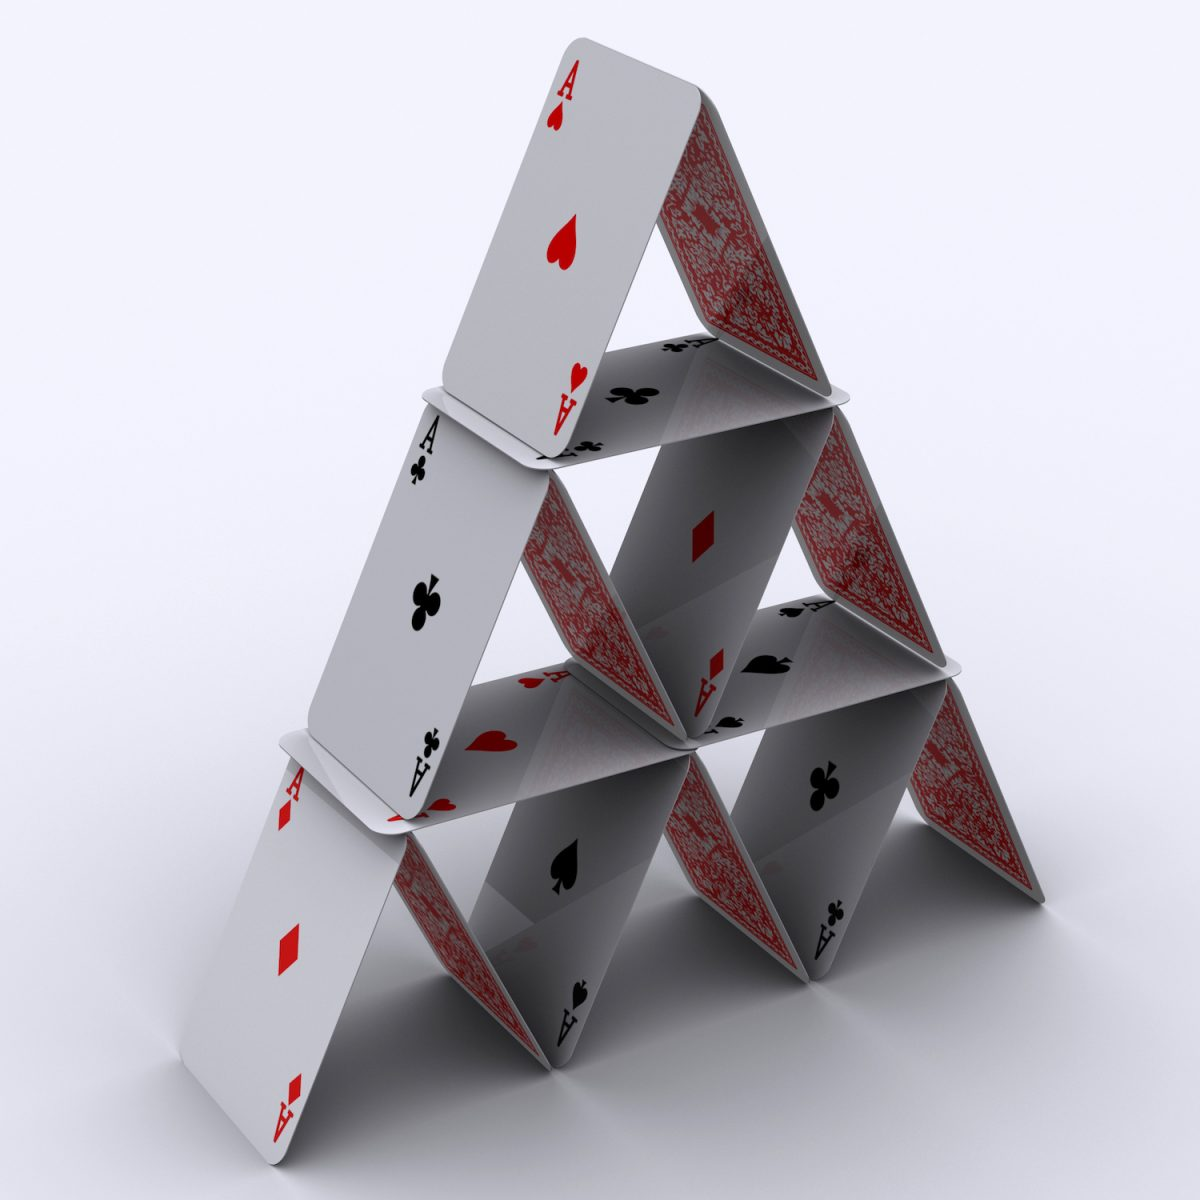 Pyramid or House of Cards